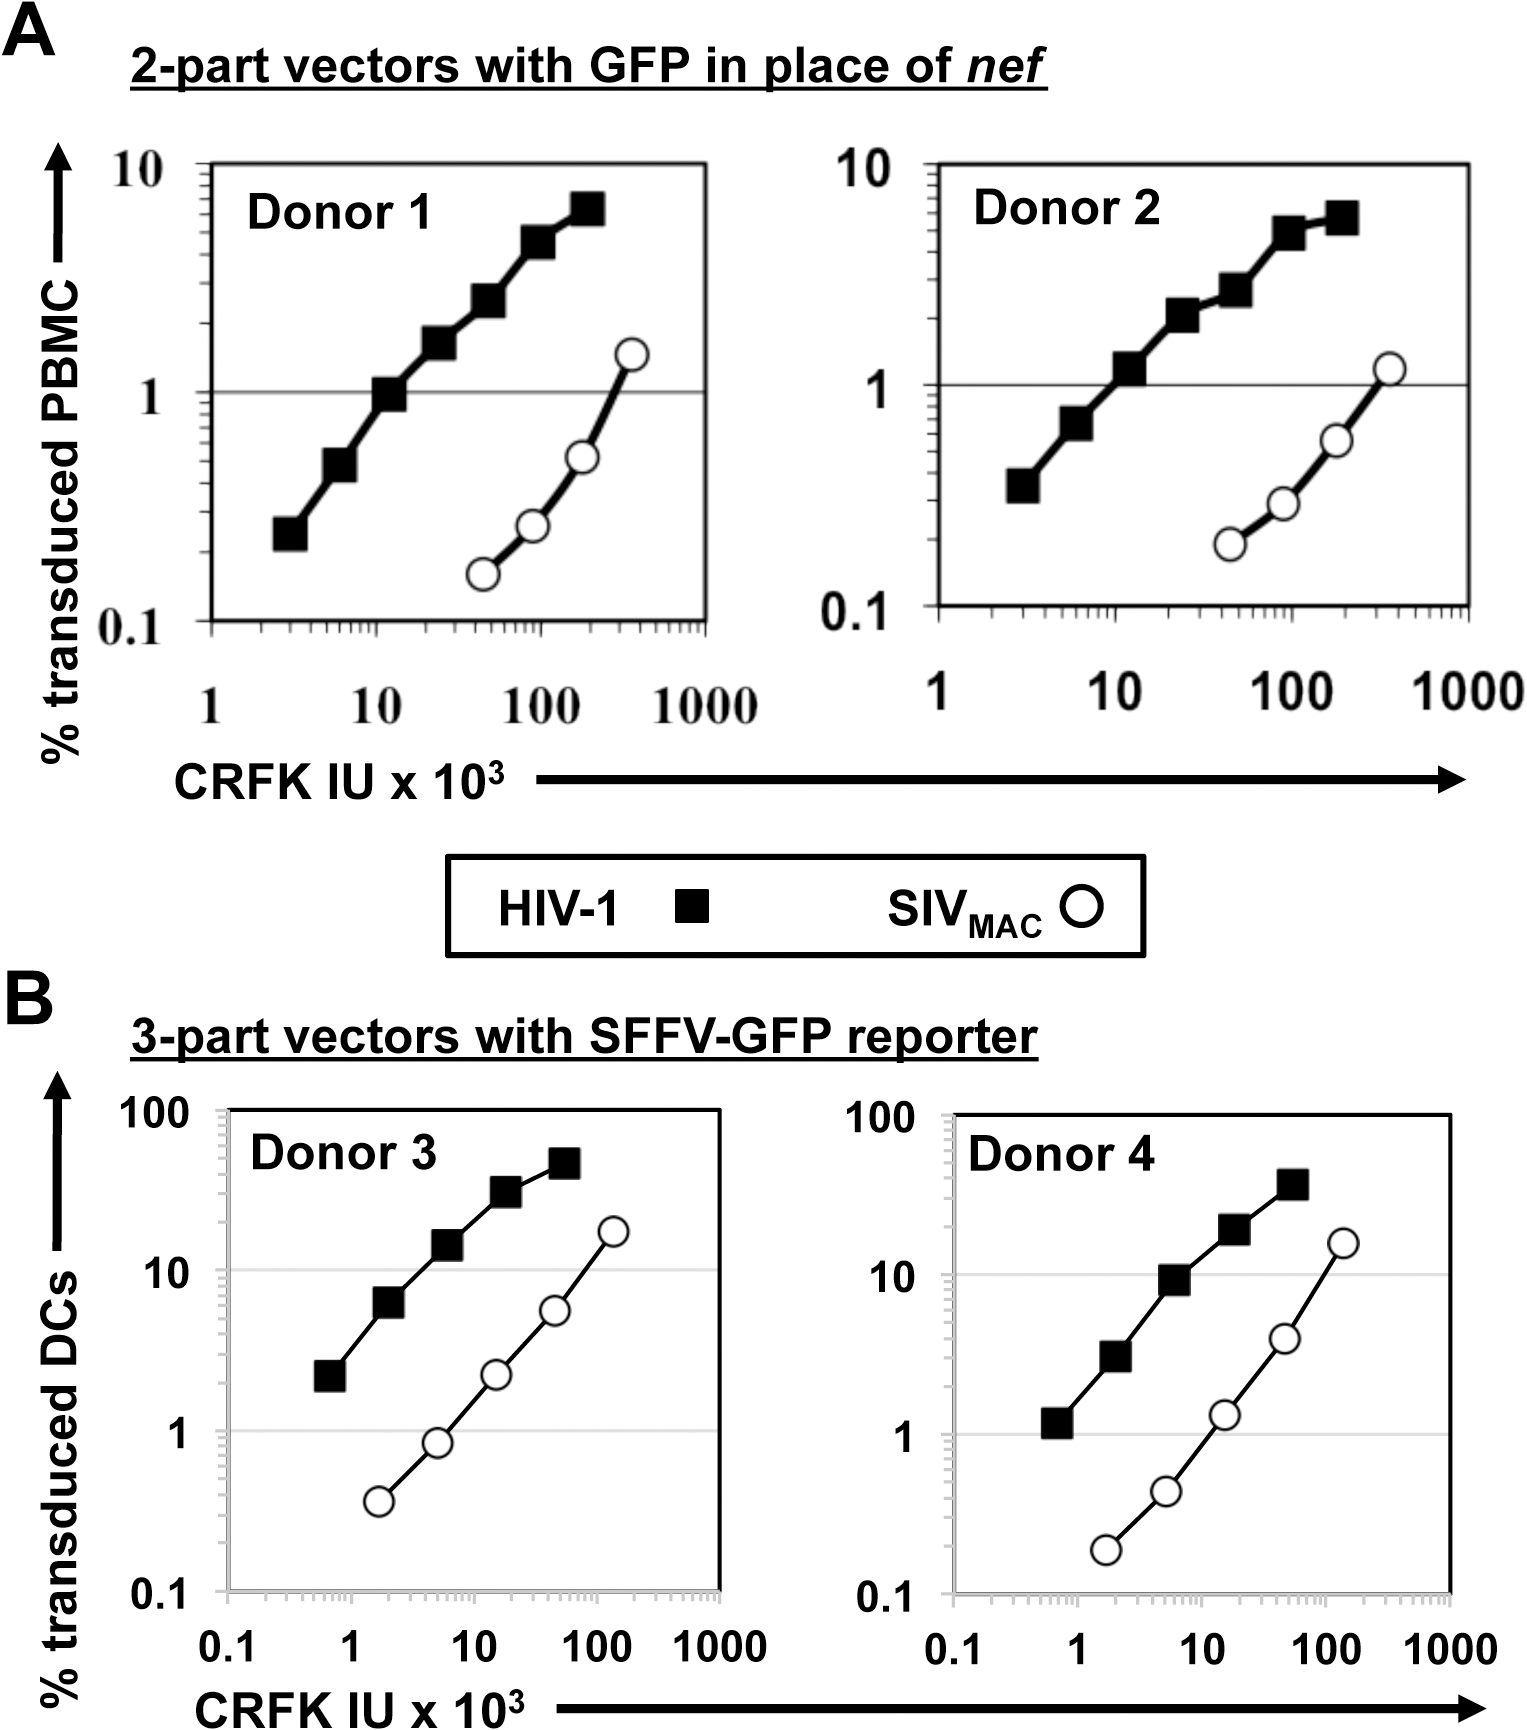 SIV<sub>MAC</sub> transduction of human peripheral blood mononuclear cells or of monocyte derived dendritic cells is less efficient than by HIV-1.